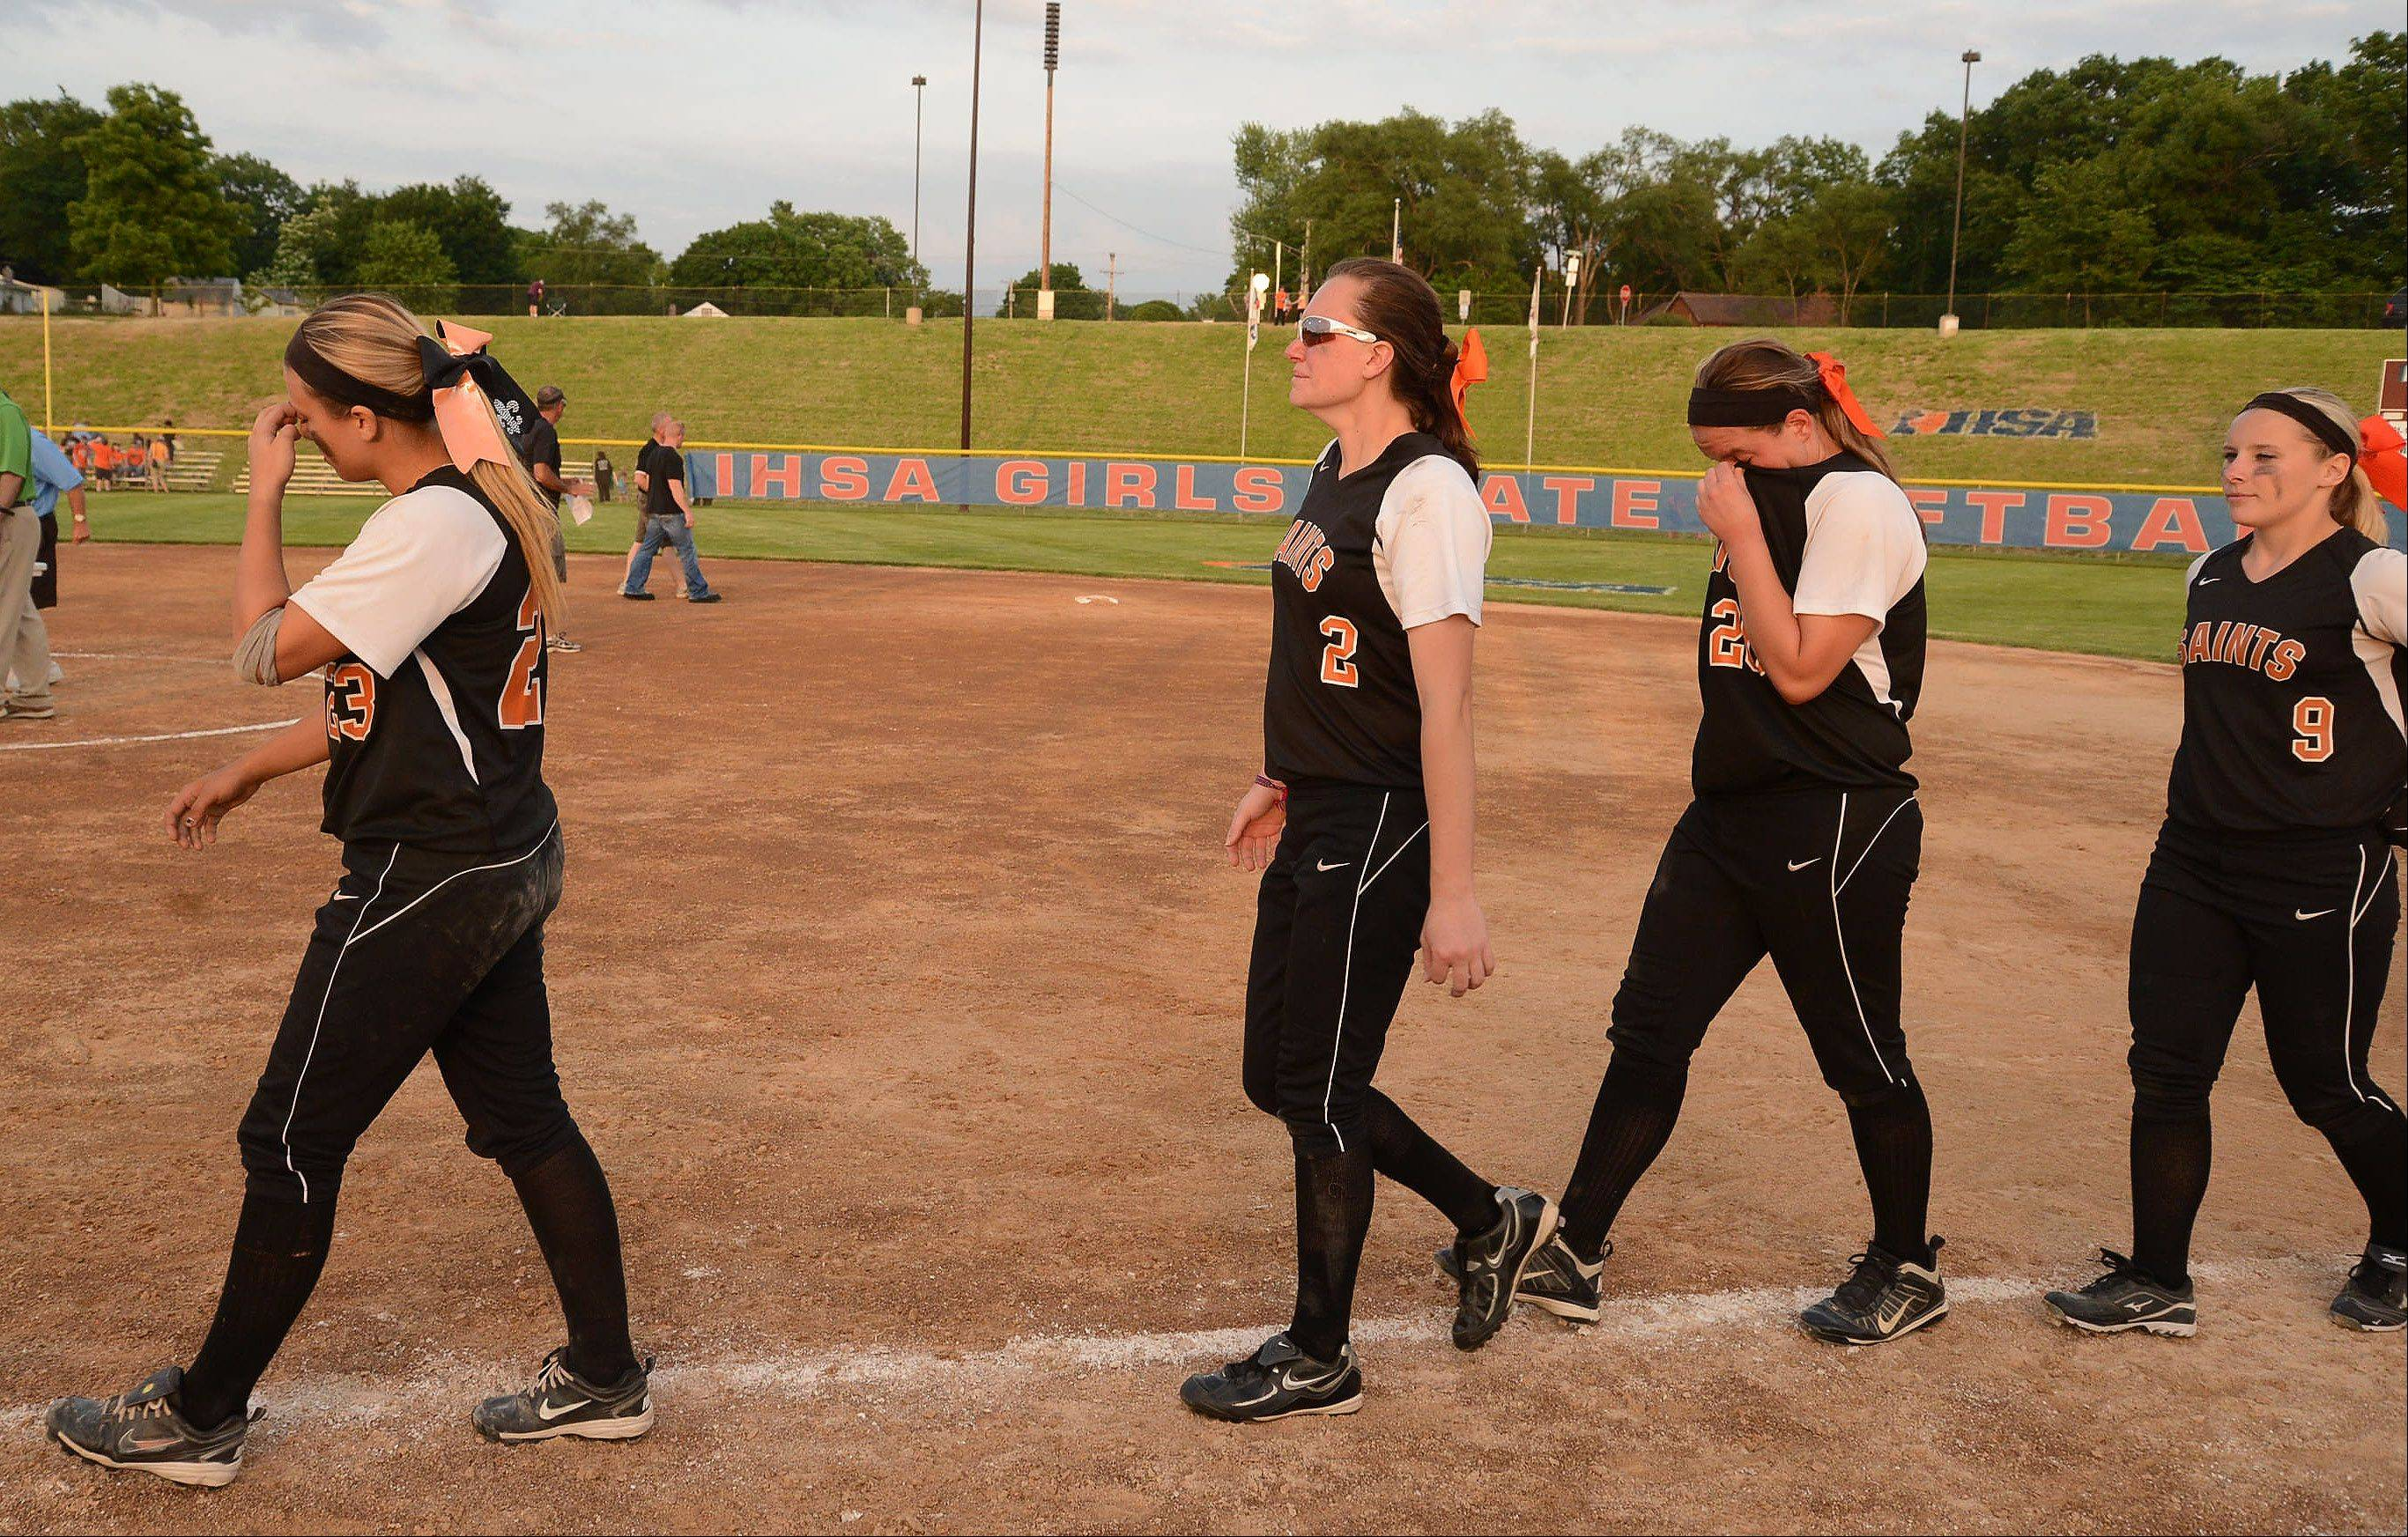 St. Charles East players walk off the field dejectedly after losing to Minooka in the Class 4A softball championship game.